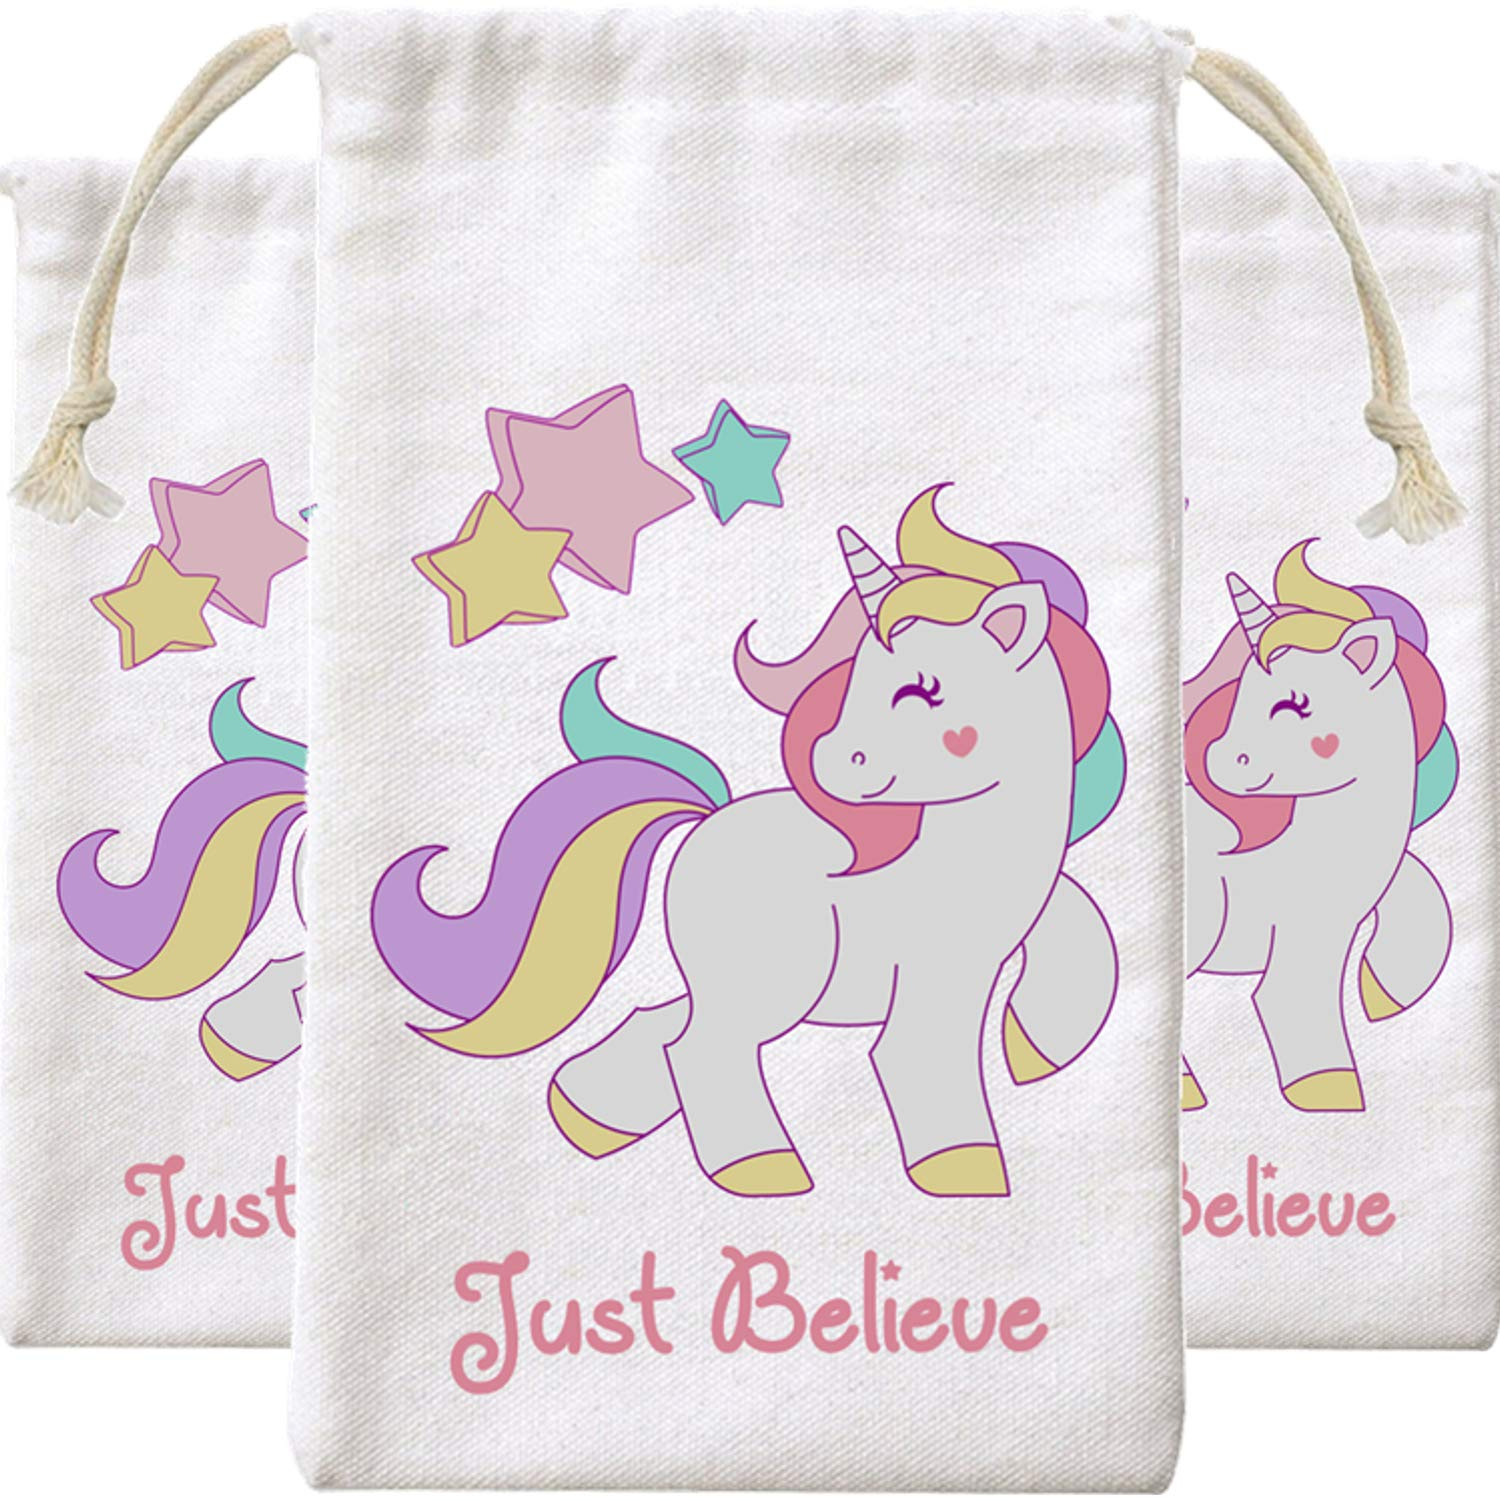 In Words Unicorn Party Favor Gift Bags - Cotton Goodie Drawstring Loot Treat Bags for Girls, Kids Birthday Favors Decoration Supplies (10 Pack)